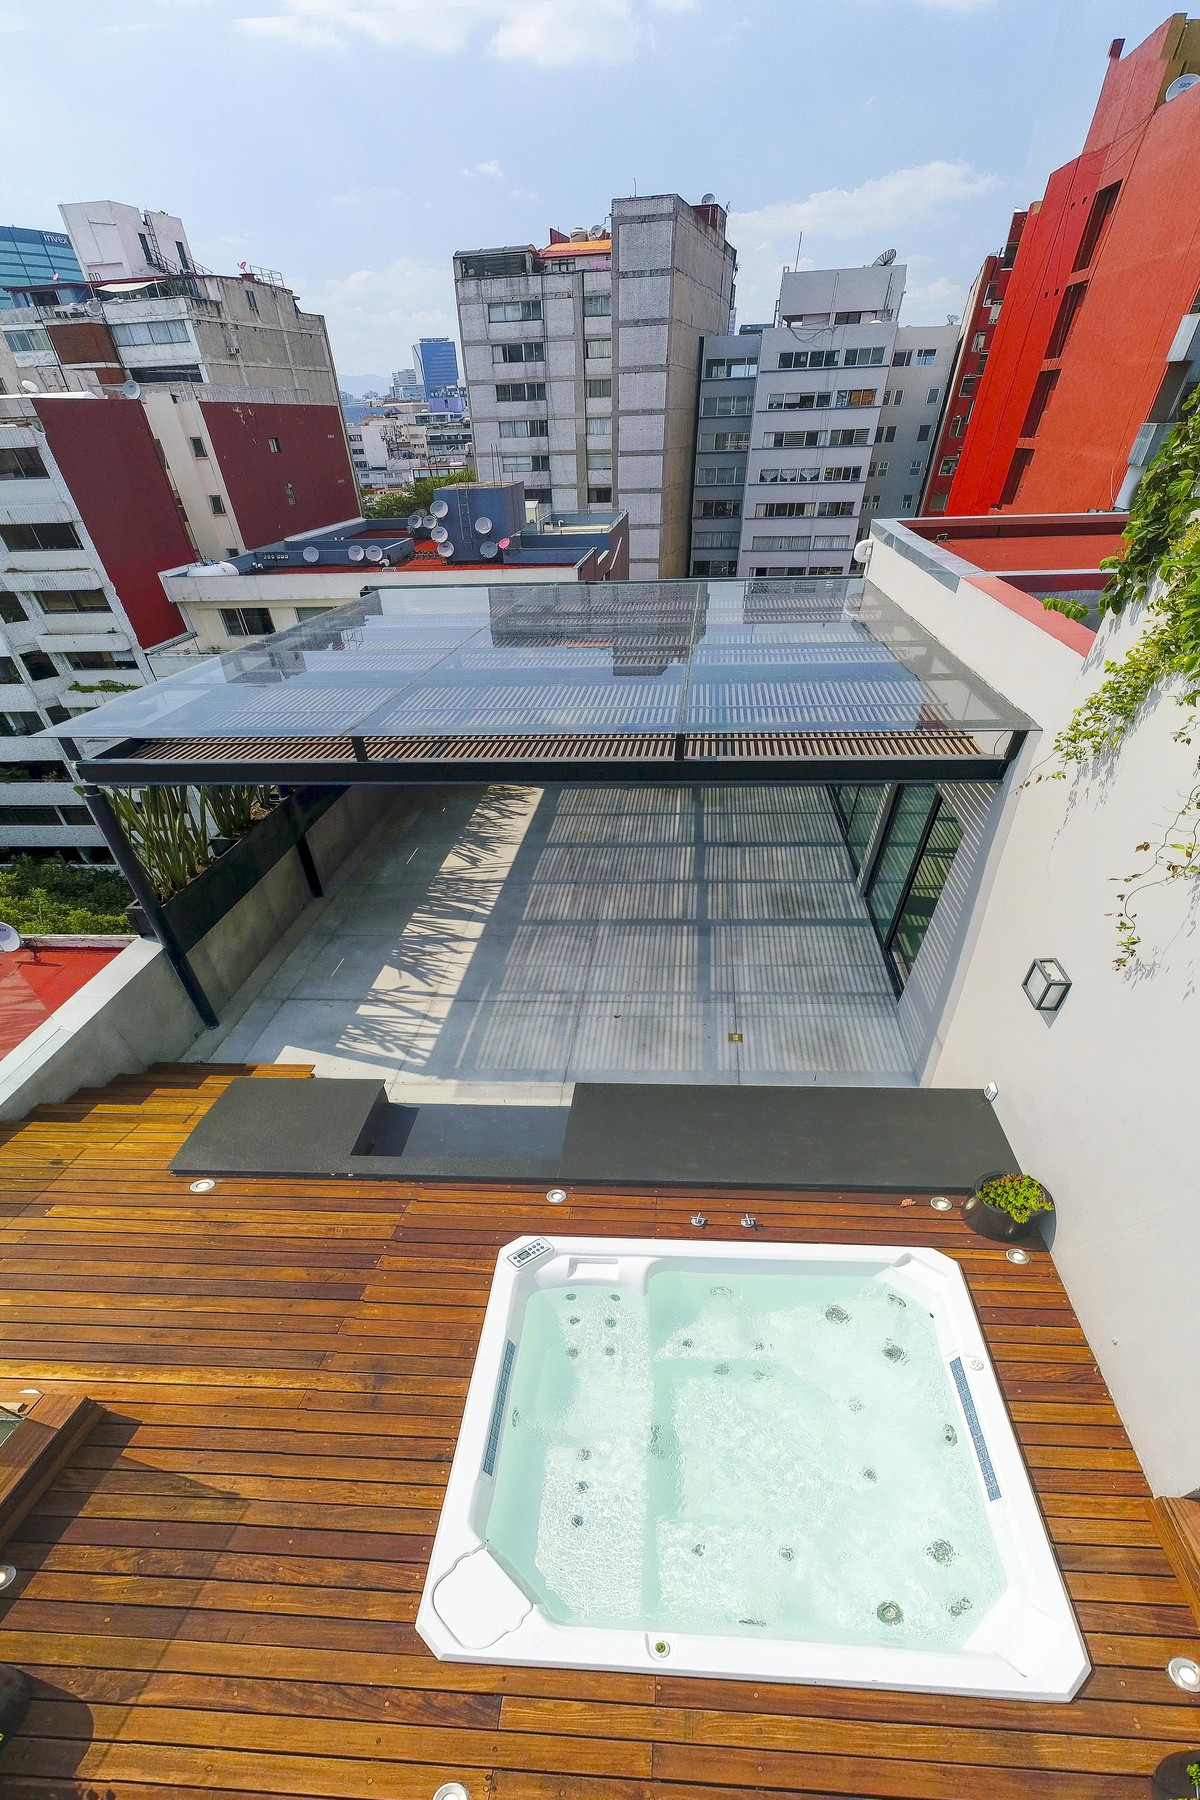 Additional photo for property listing at Ibsen Apartment Federal District, Mexico Df Mexico